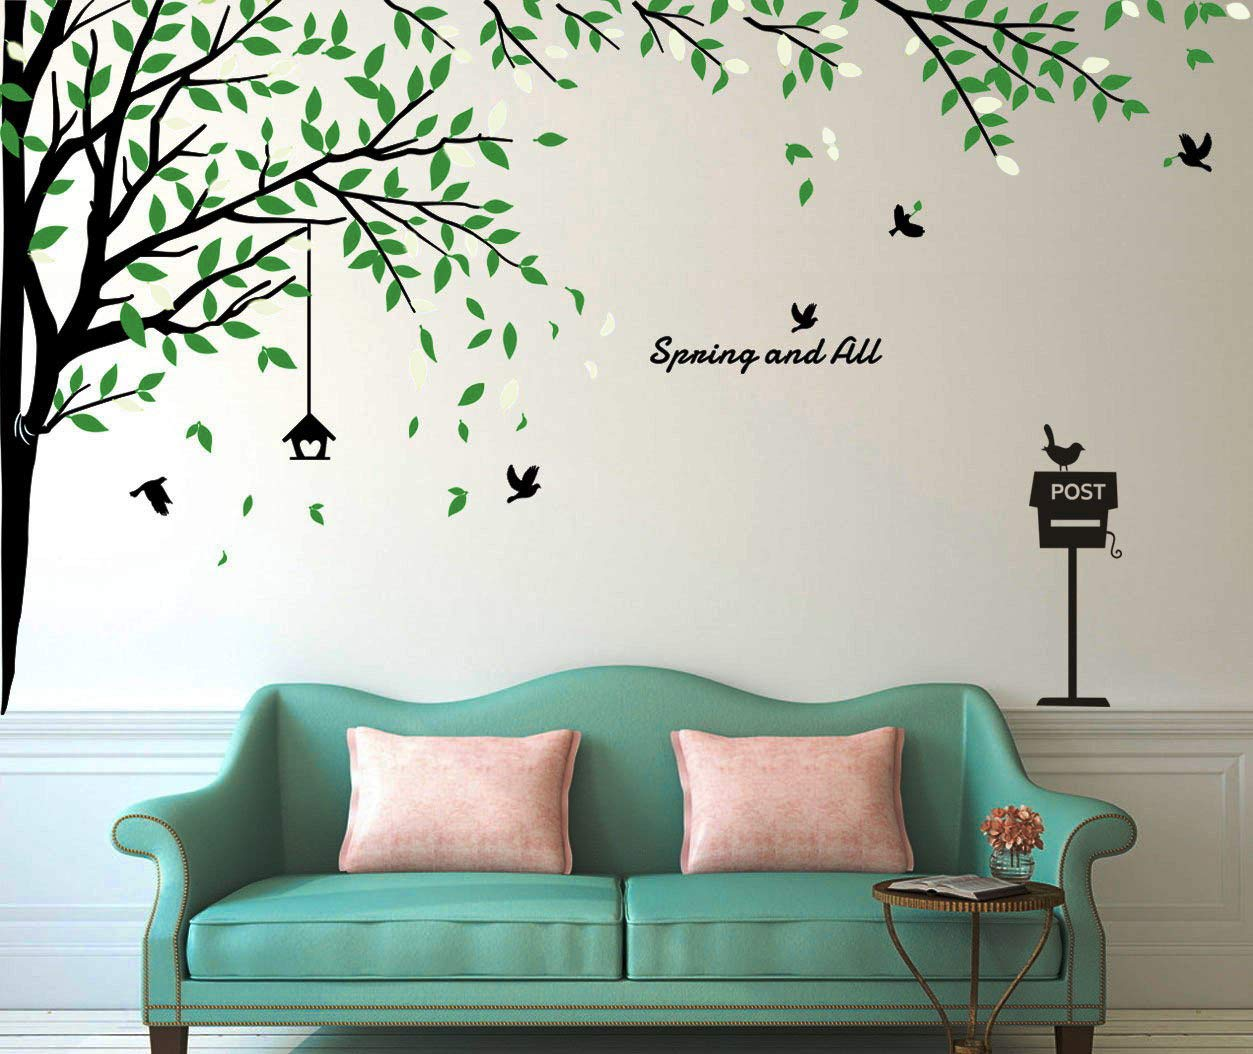 Wall Art Tree Black And Green For Living Room Children Kids Baby Wall Decoration Removable Vinyl Wall Decal Art Home Decoration 117x71 Buy Online In India At Desertcart In Productid 94847521